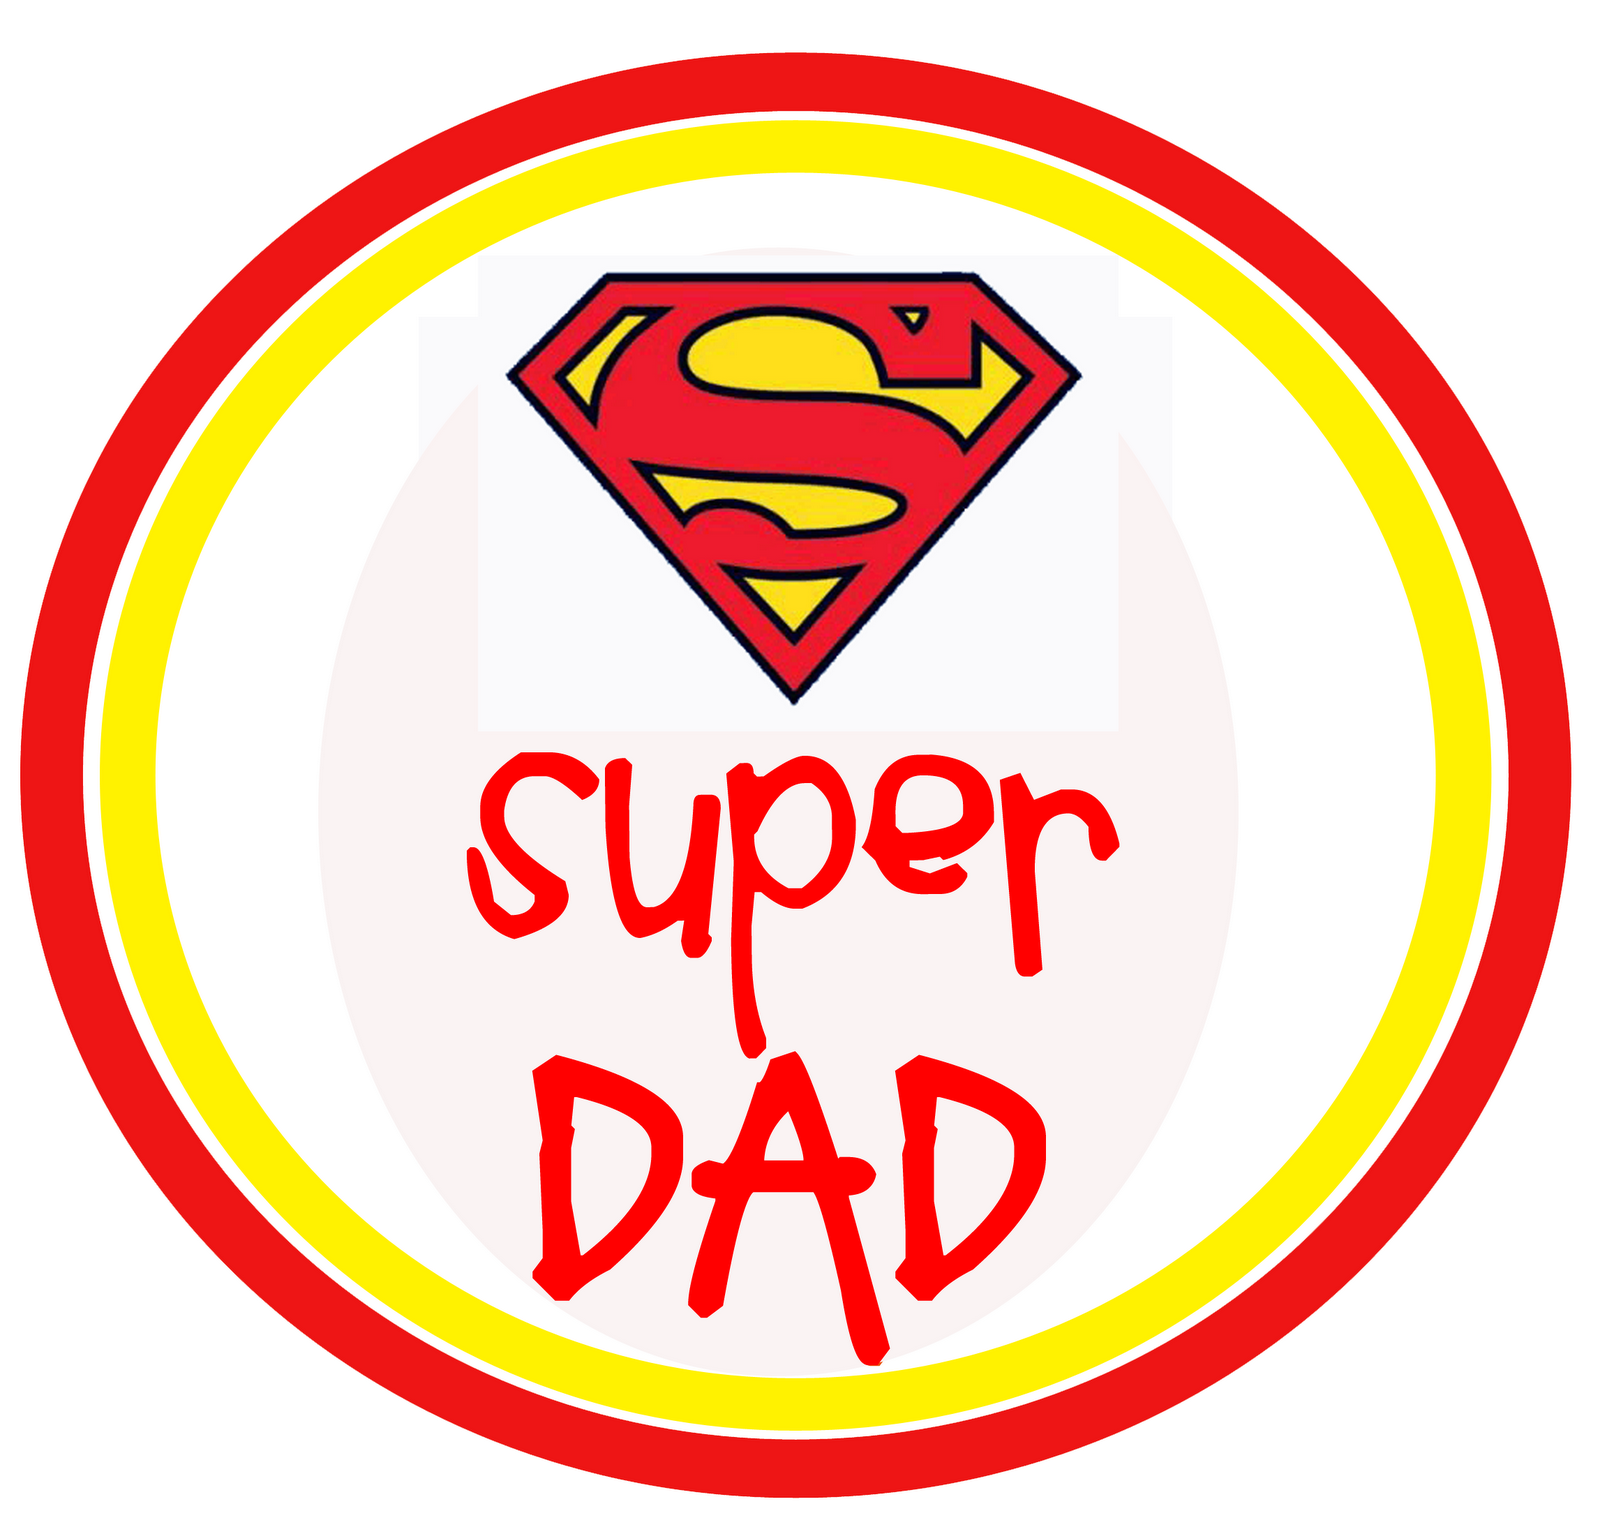 Dads clipart #6